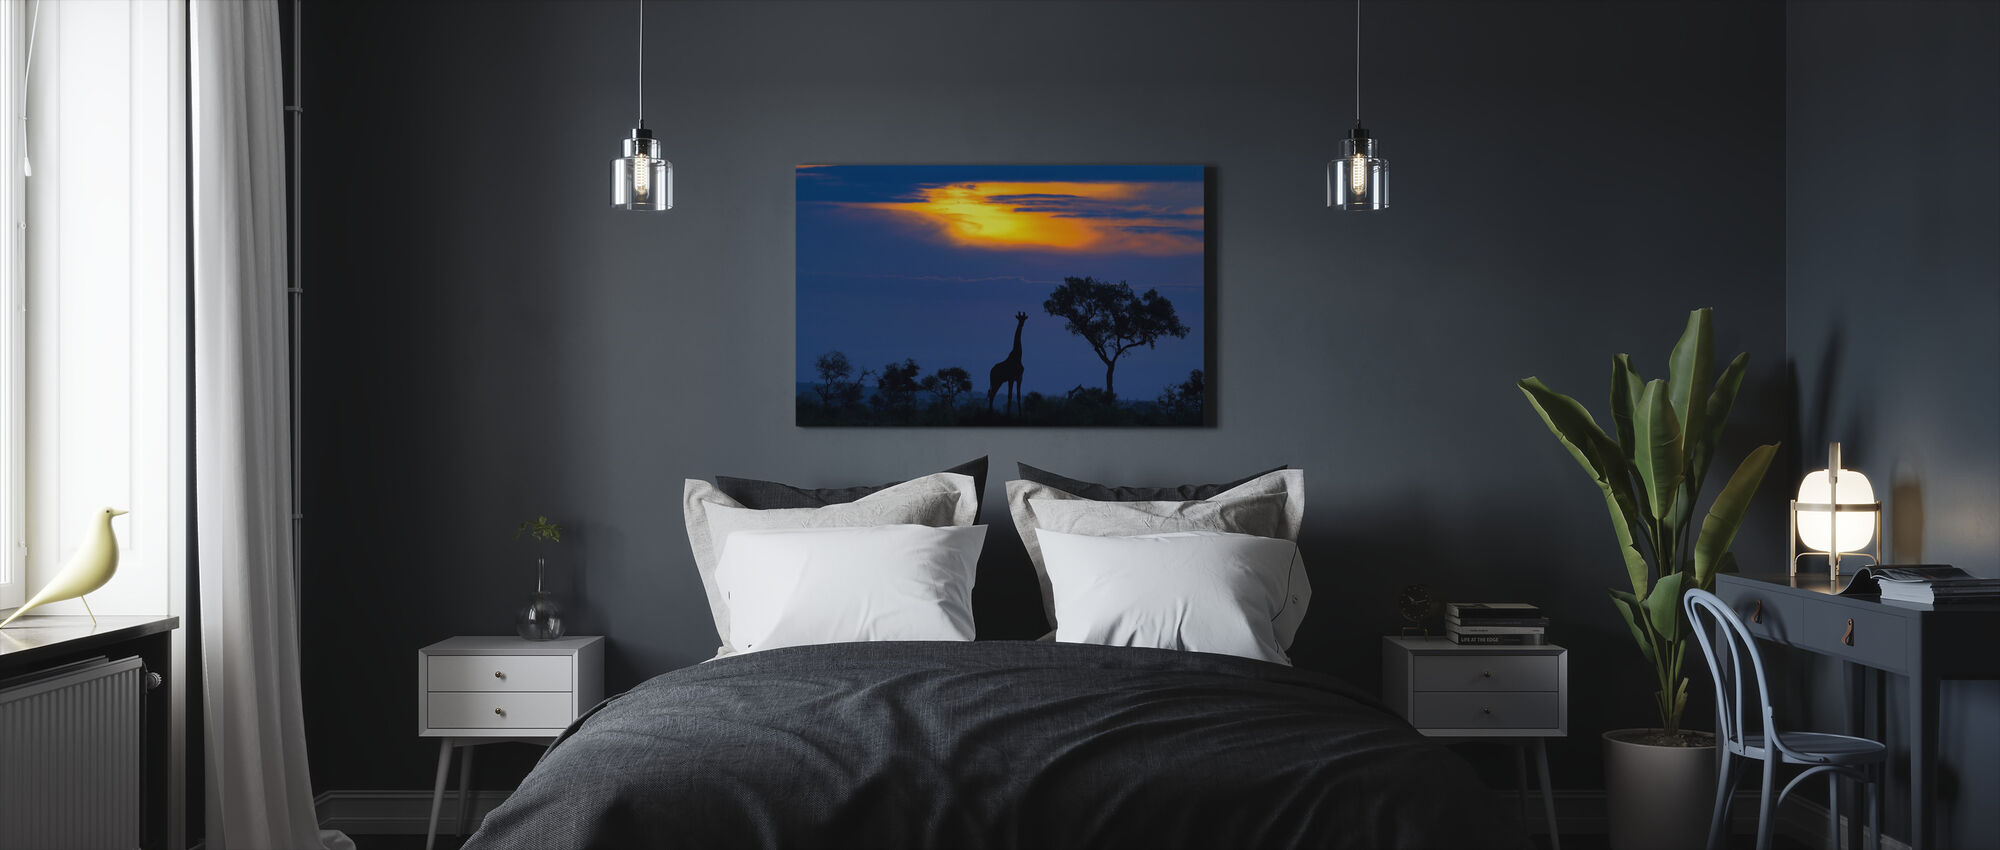 A Giraffe at Sunset - Canvas print - Bedroom